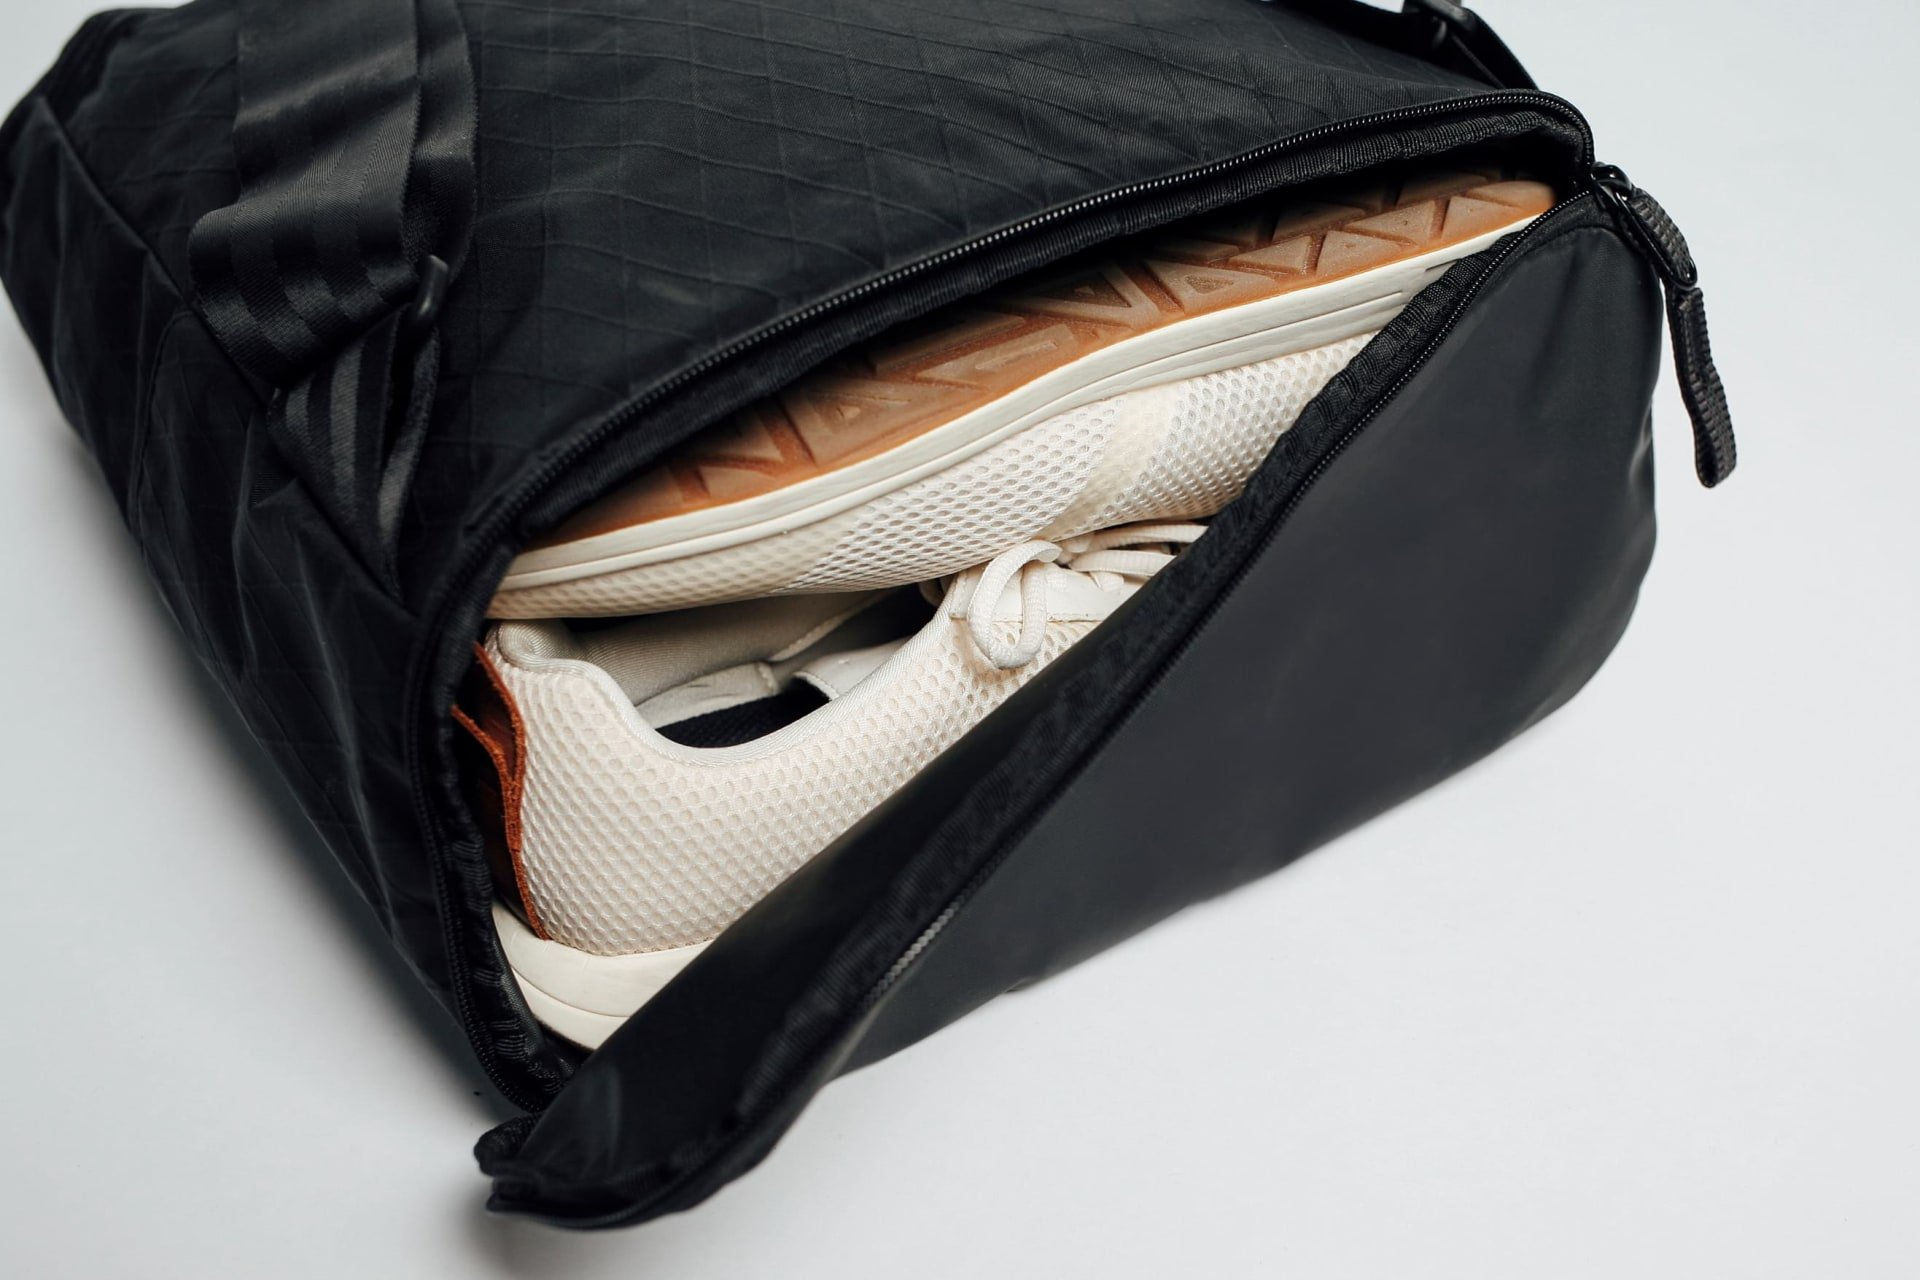 Water Resistant Shoe / Dirty Clothes Compartment